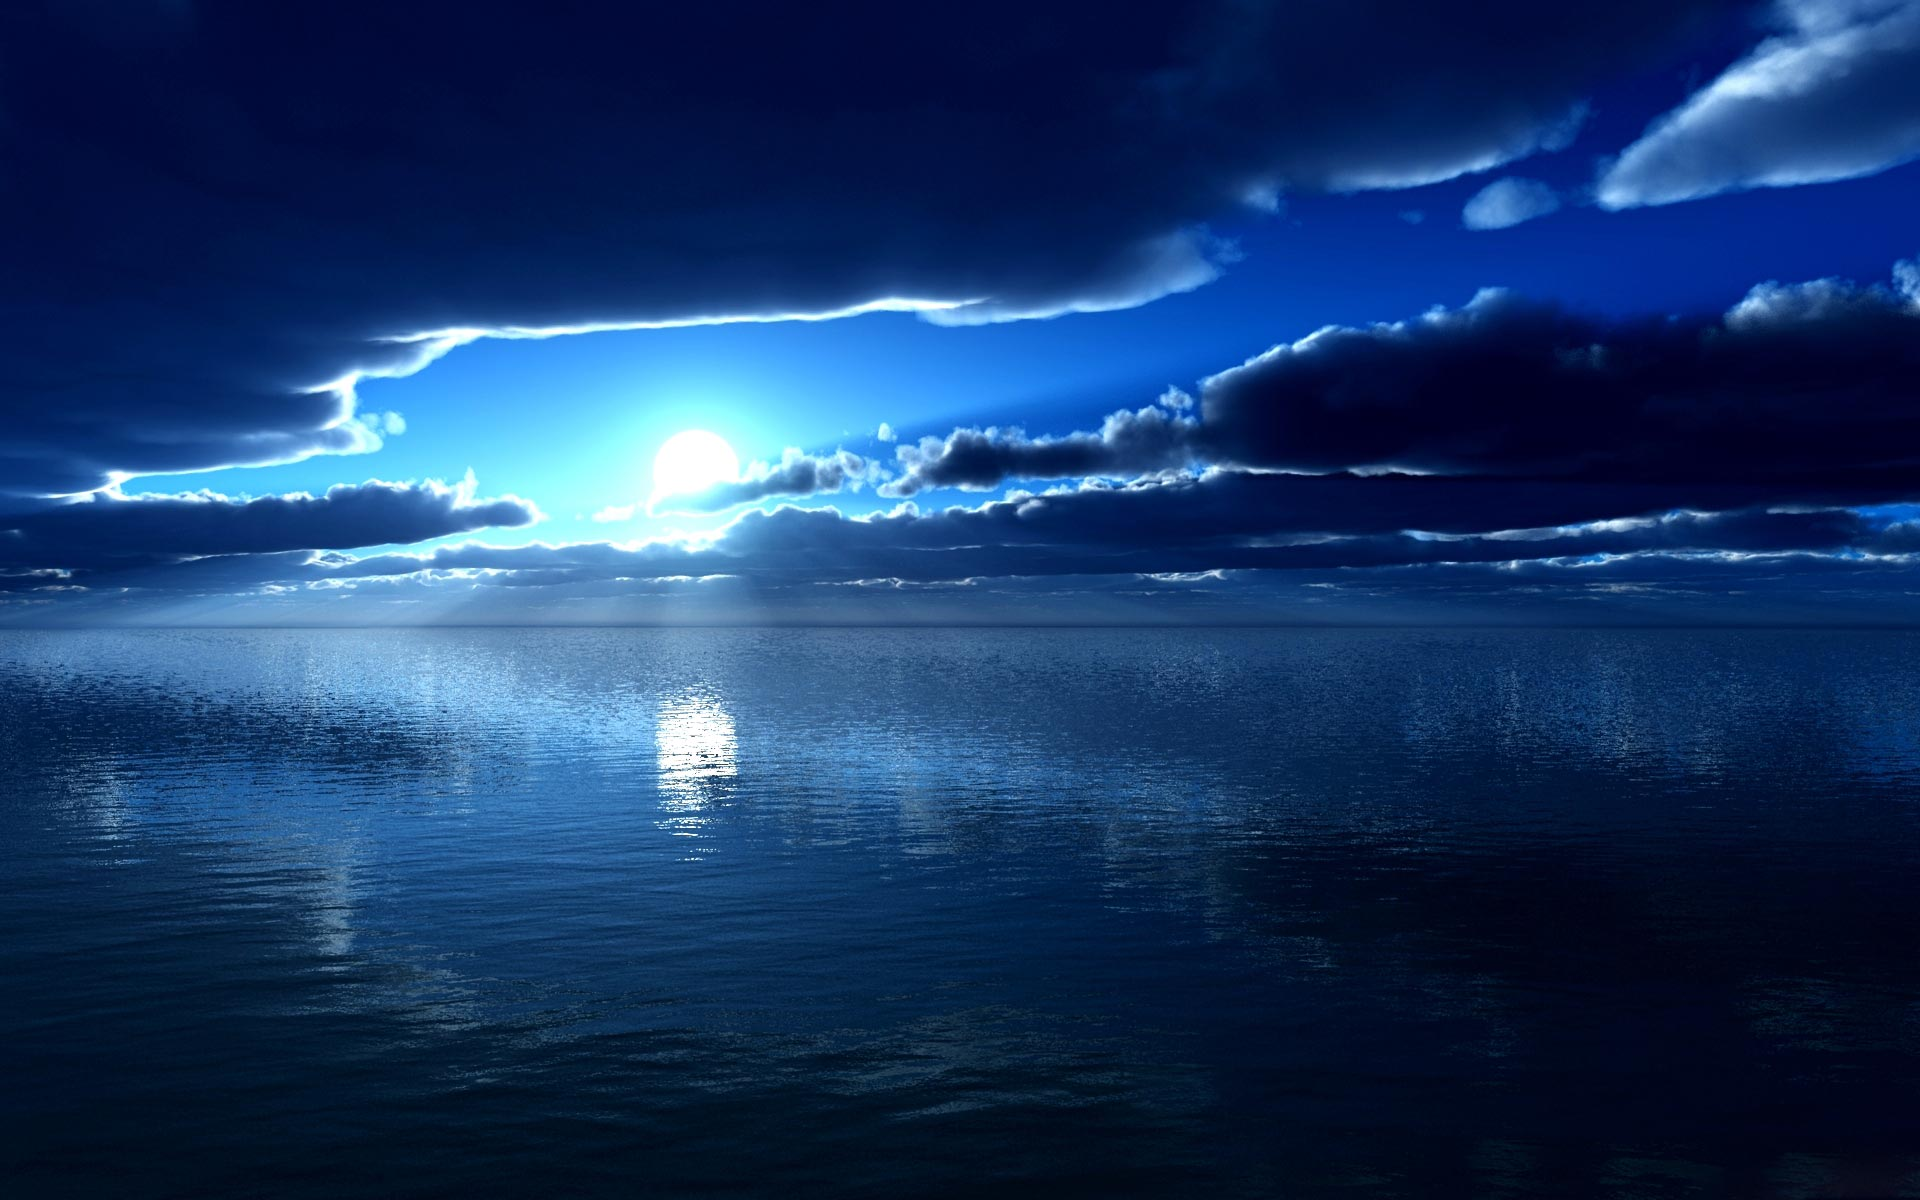 Ocean Backgrounds hd   HD Wallpapers 1920x1200